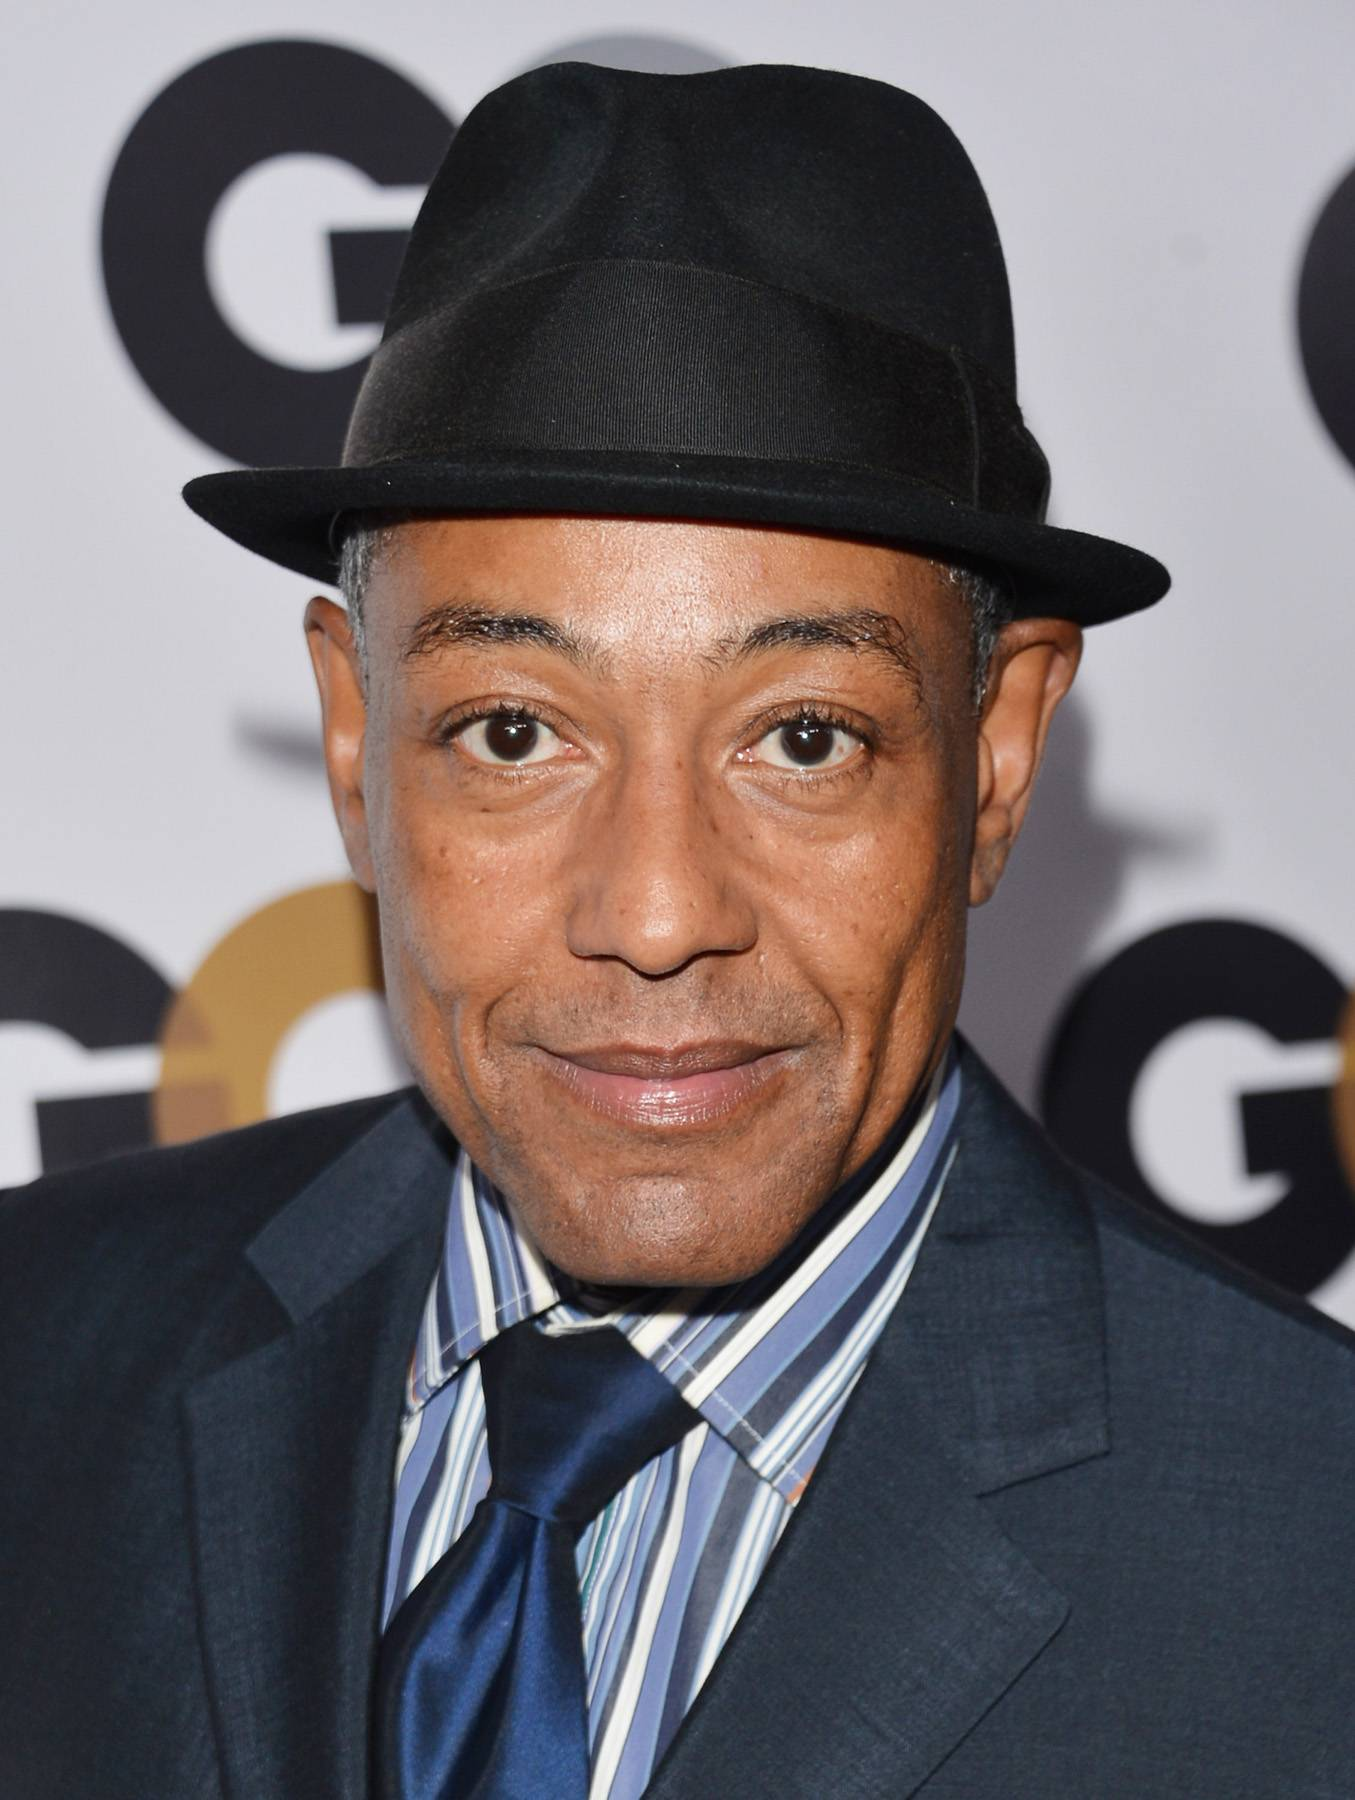 Giancarlo Esposito: April 26 - The Do the Right Thing star turns 50. (Photo: Alberto E. Rodriguez/Getty Images)